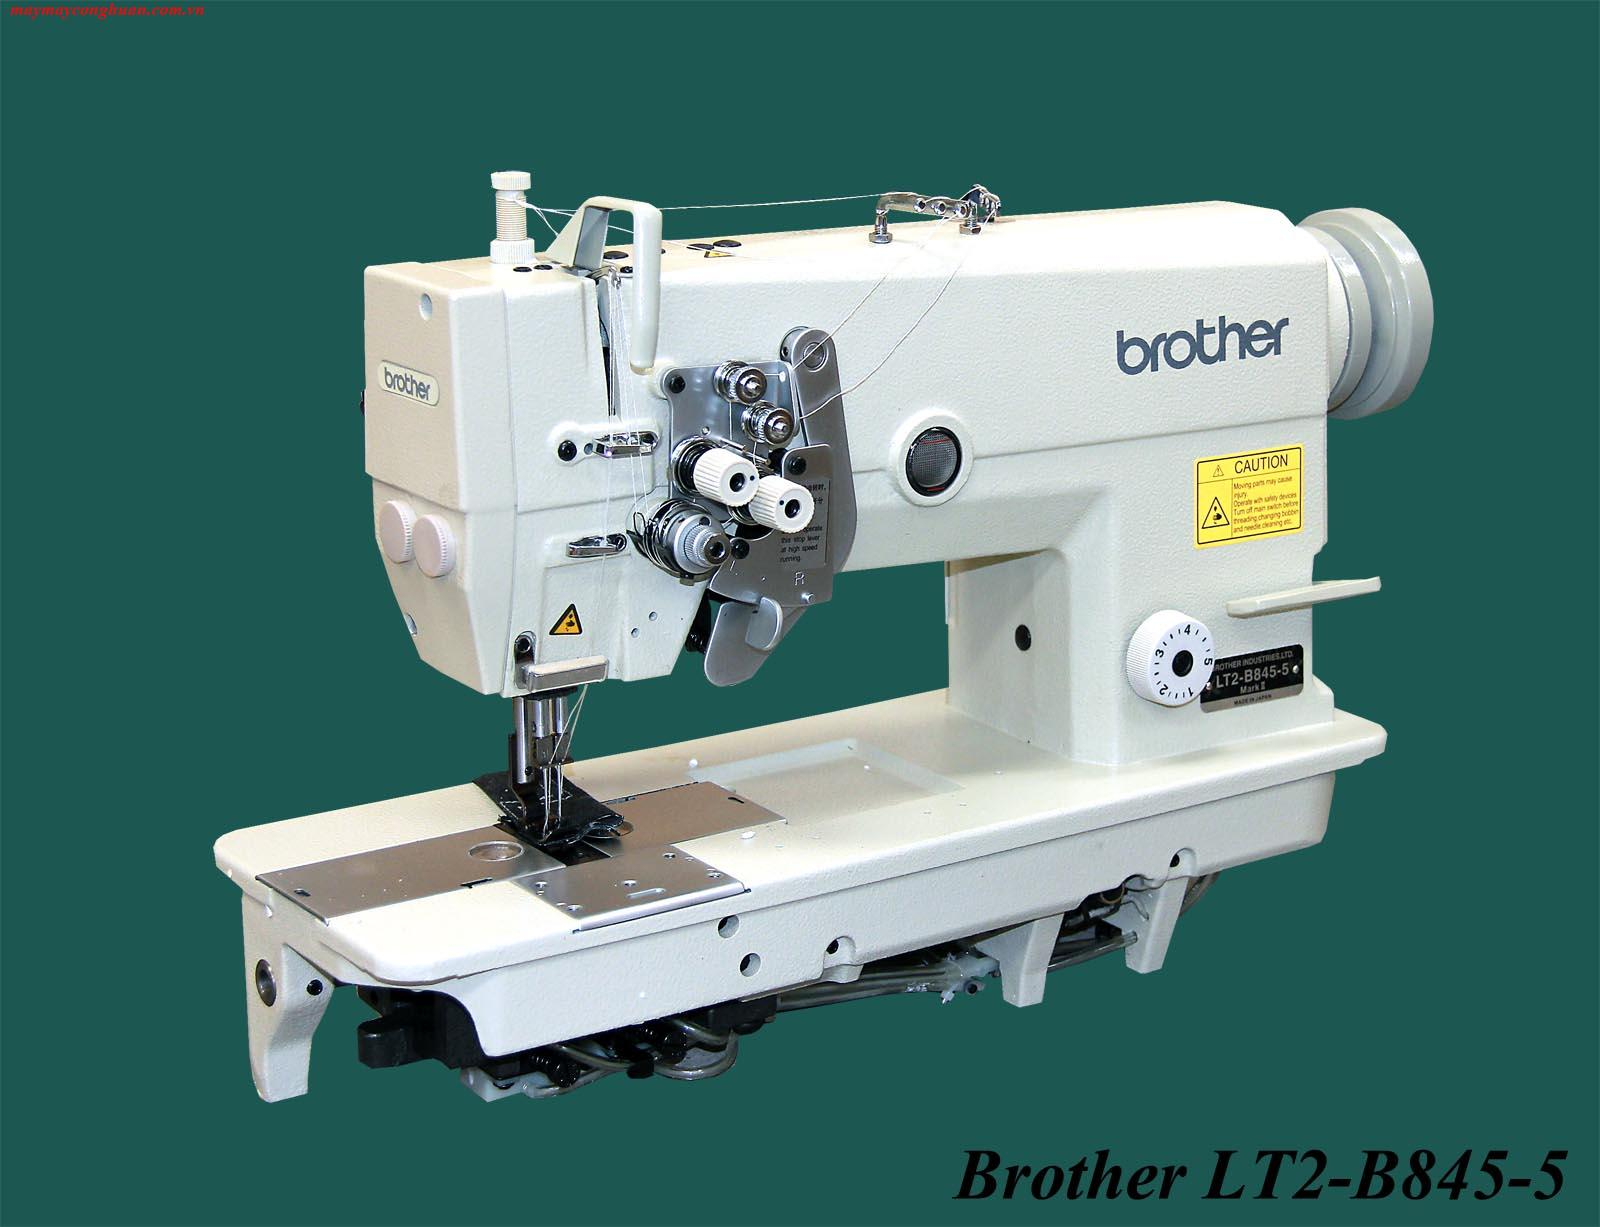 Brother LT2-B845-5